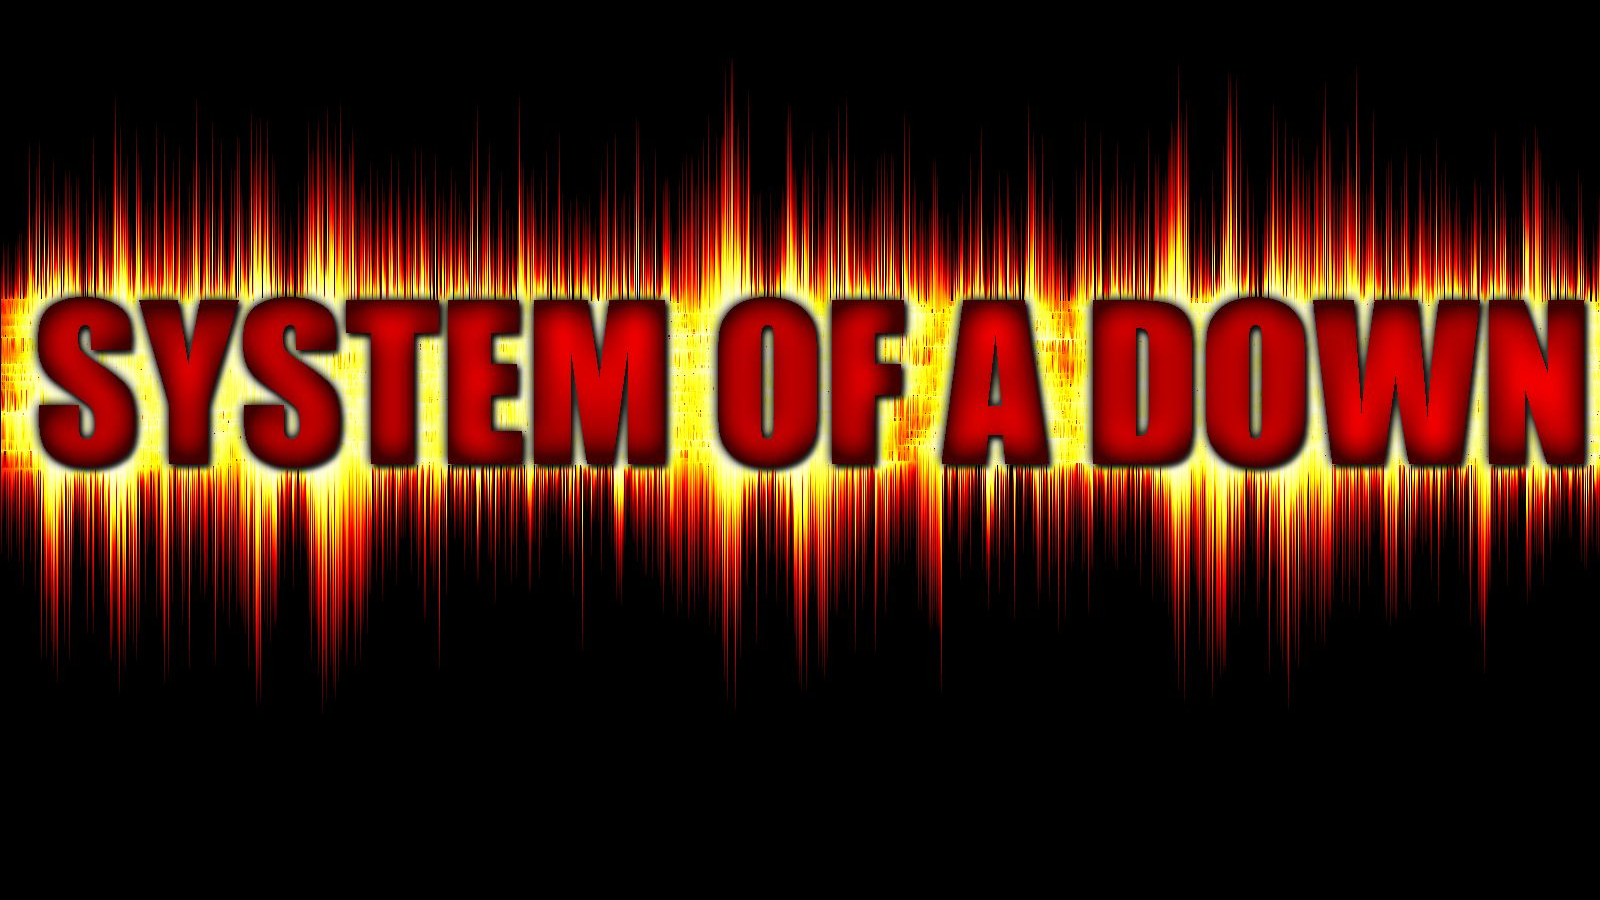 Free Download Angels Downloads Wallpapers System Of A Down